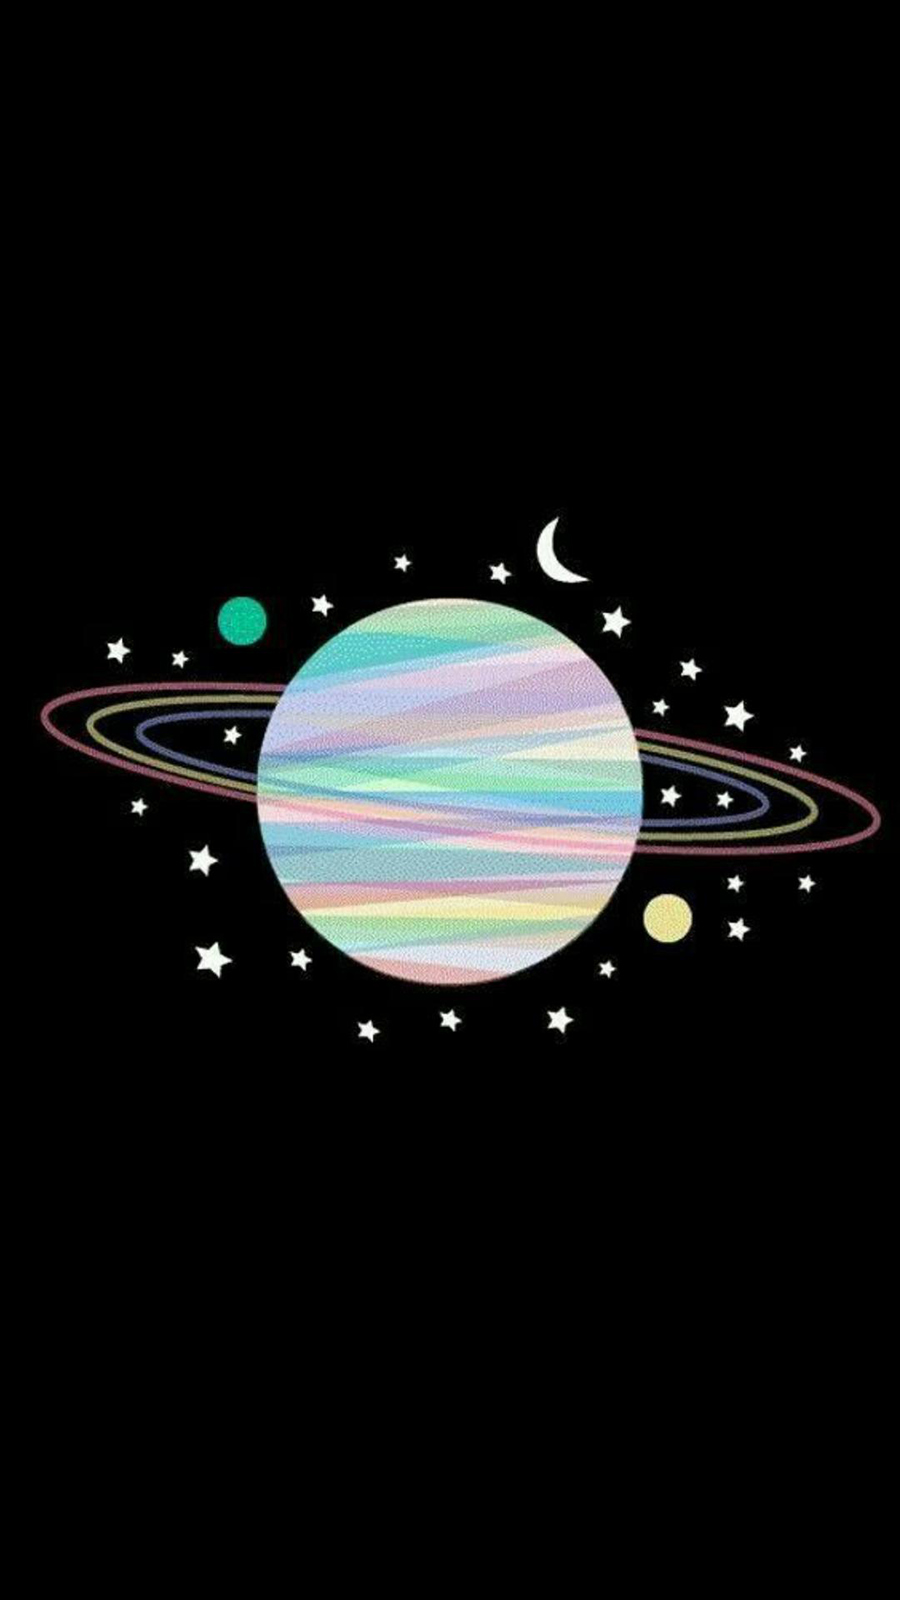 Rainbow Planet Wallpaper – Planet Wallpapers Free Download